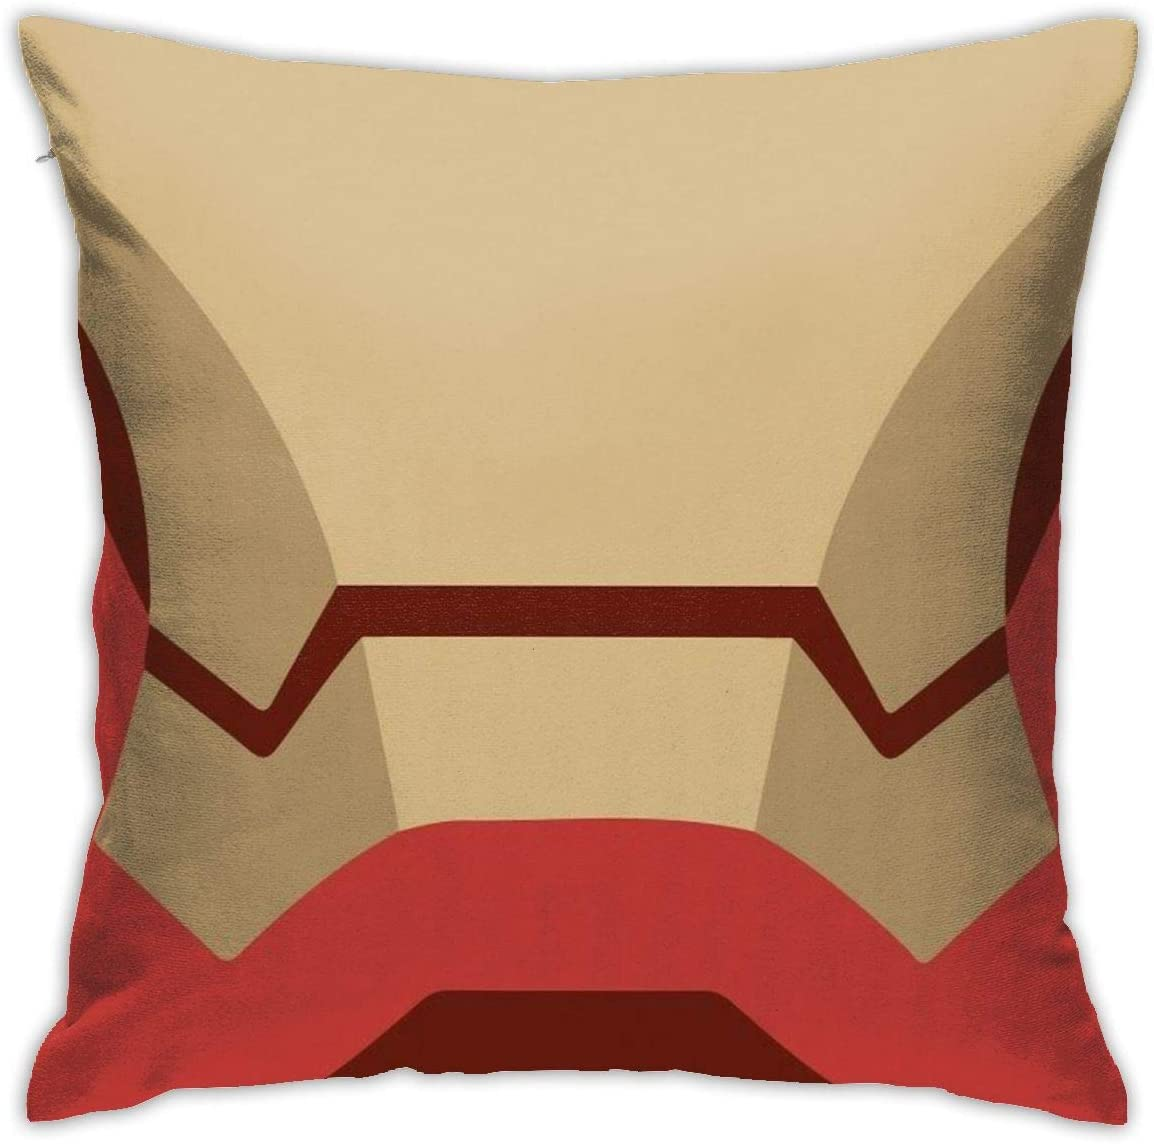 from Deku from My Hero Academia(1) Pillowcases, Floor Pillowcases, Pillowcases, Sofa Cushions, Cushion Covers, Backrest Covers, Car Cushion Interiors